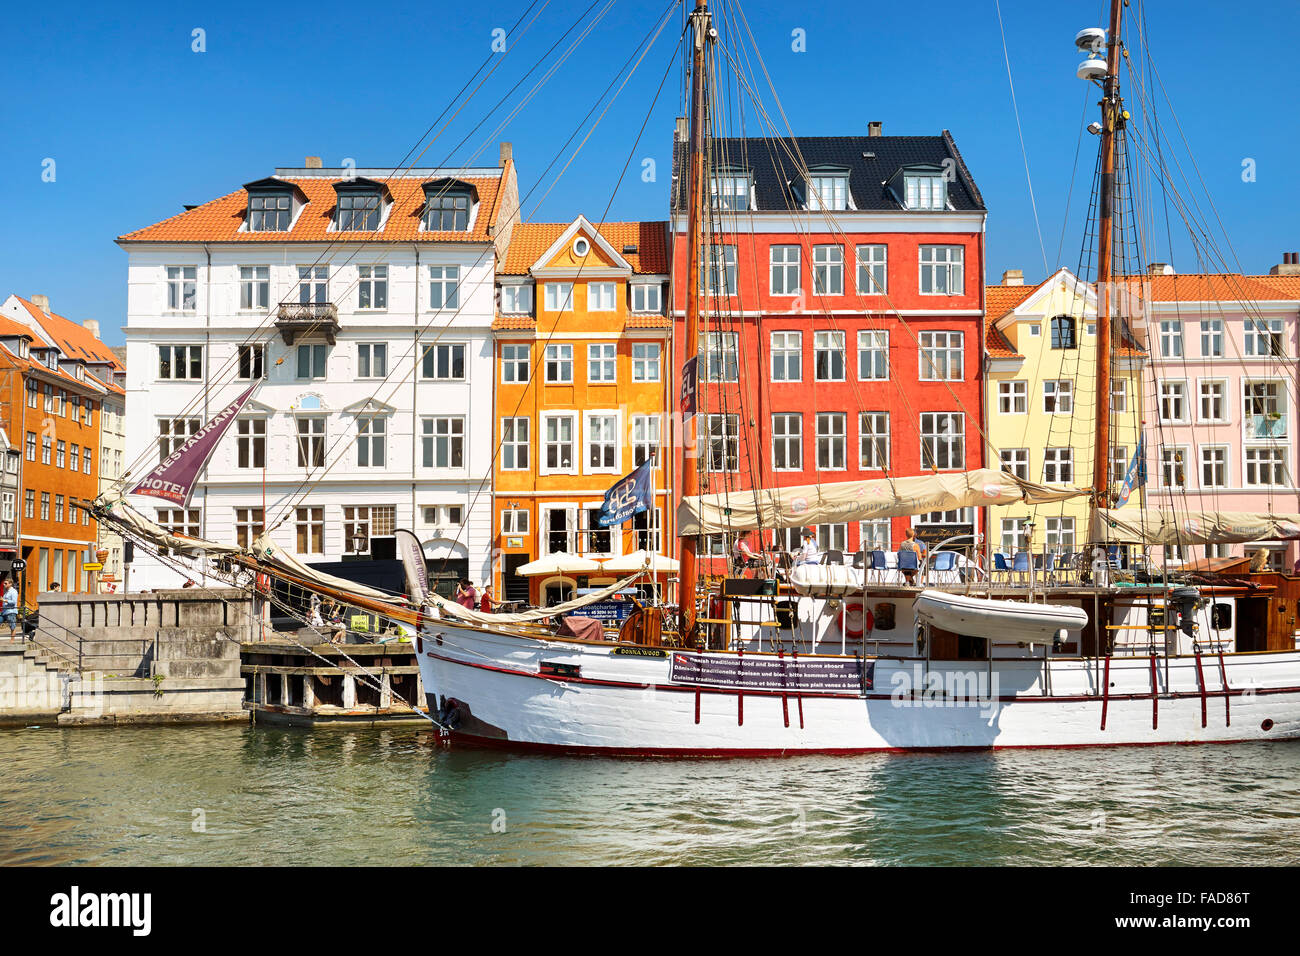 The boat in Nyhavn Canal, Copenhagen, Denmark Stock Photo